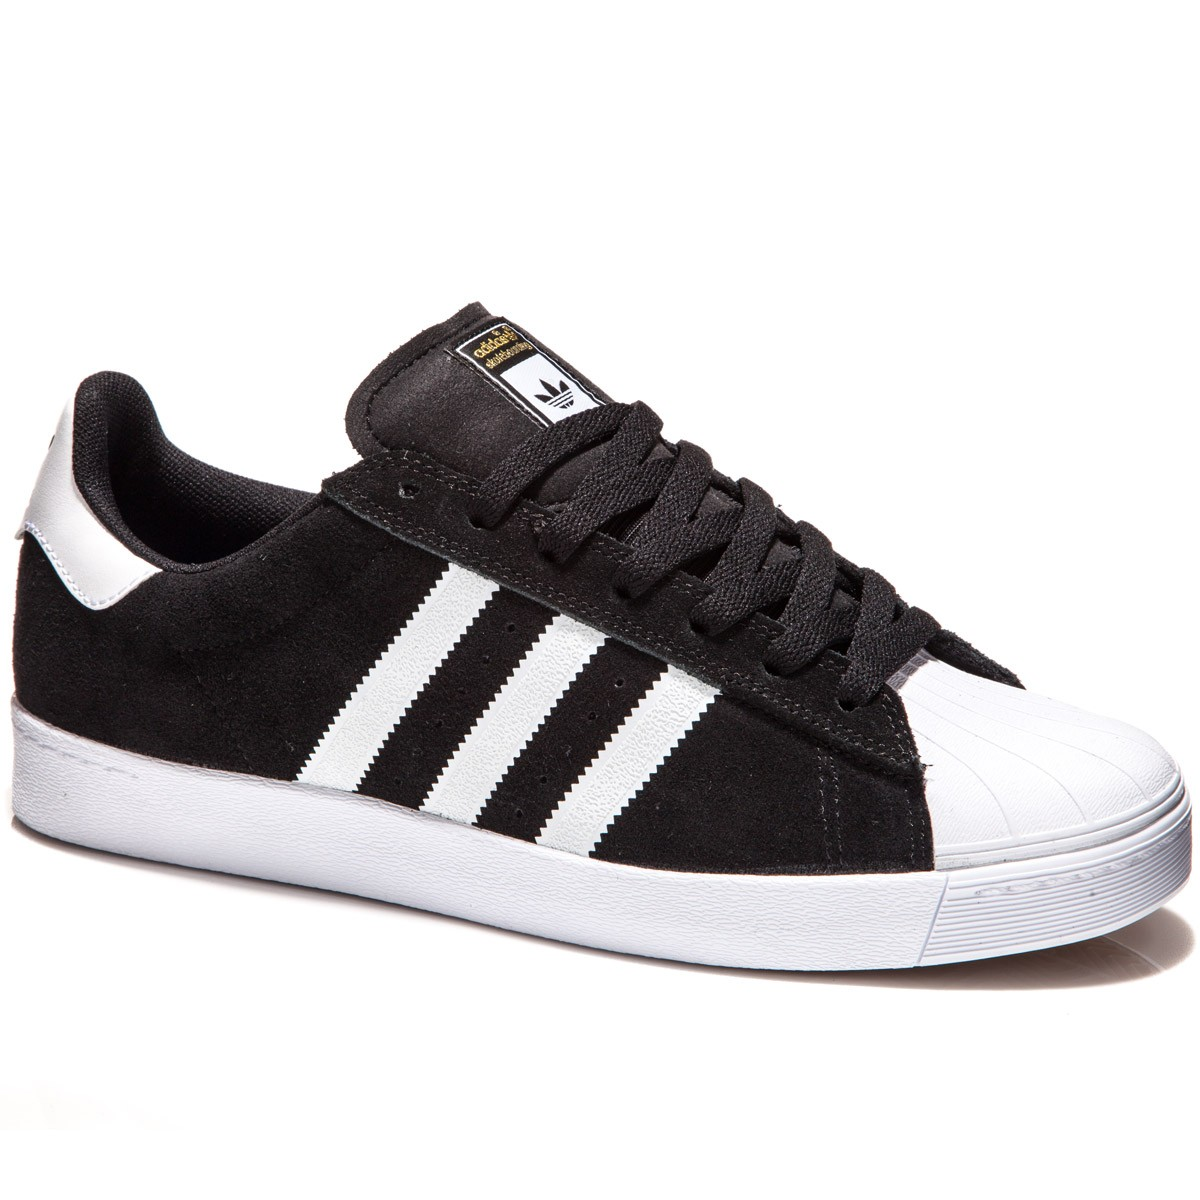 Adidas Superstar Sneakers Black And White